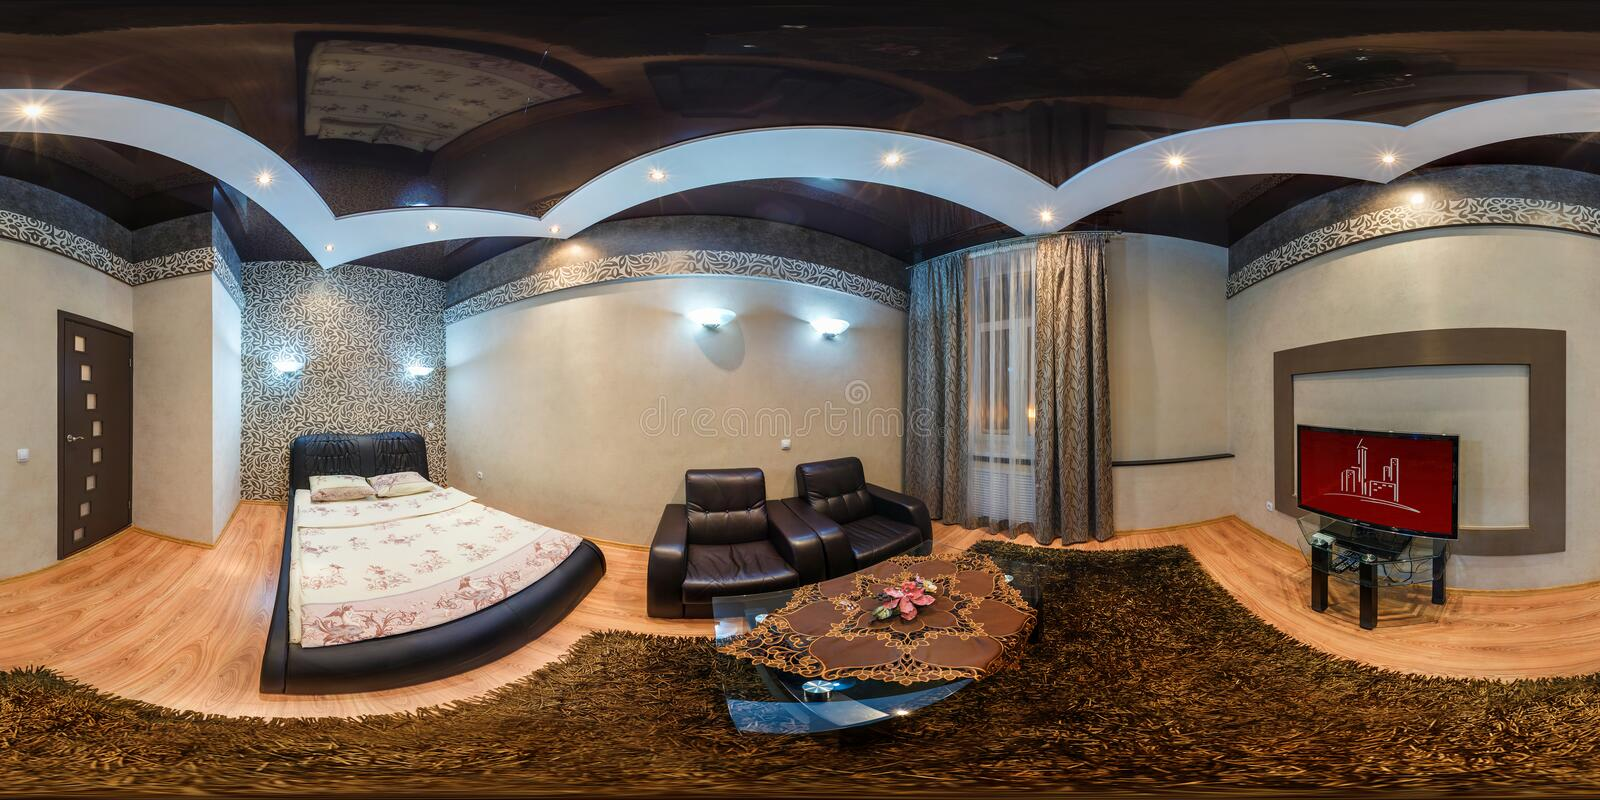 GRODNO , BELARUS - JULY 26, 2013: Modern loft apartment interior, bedroom, hall, full 360 degree panorama in equirectangular. Spherical equidistant projection royalty free stock photography